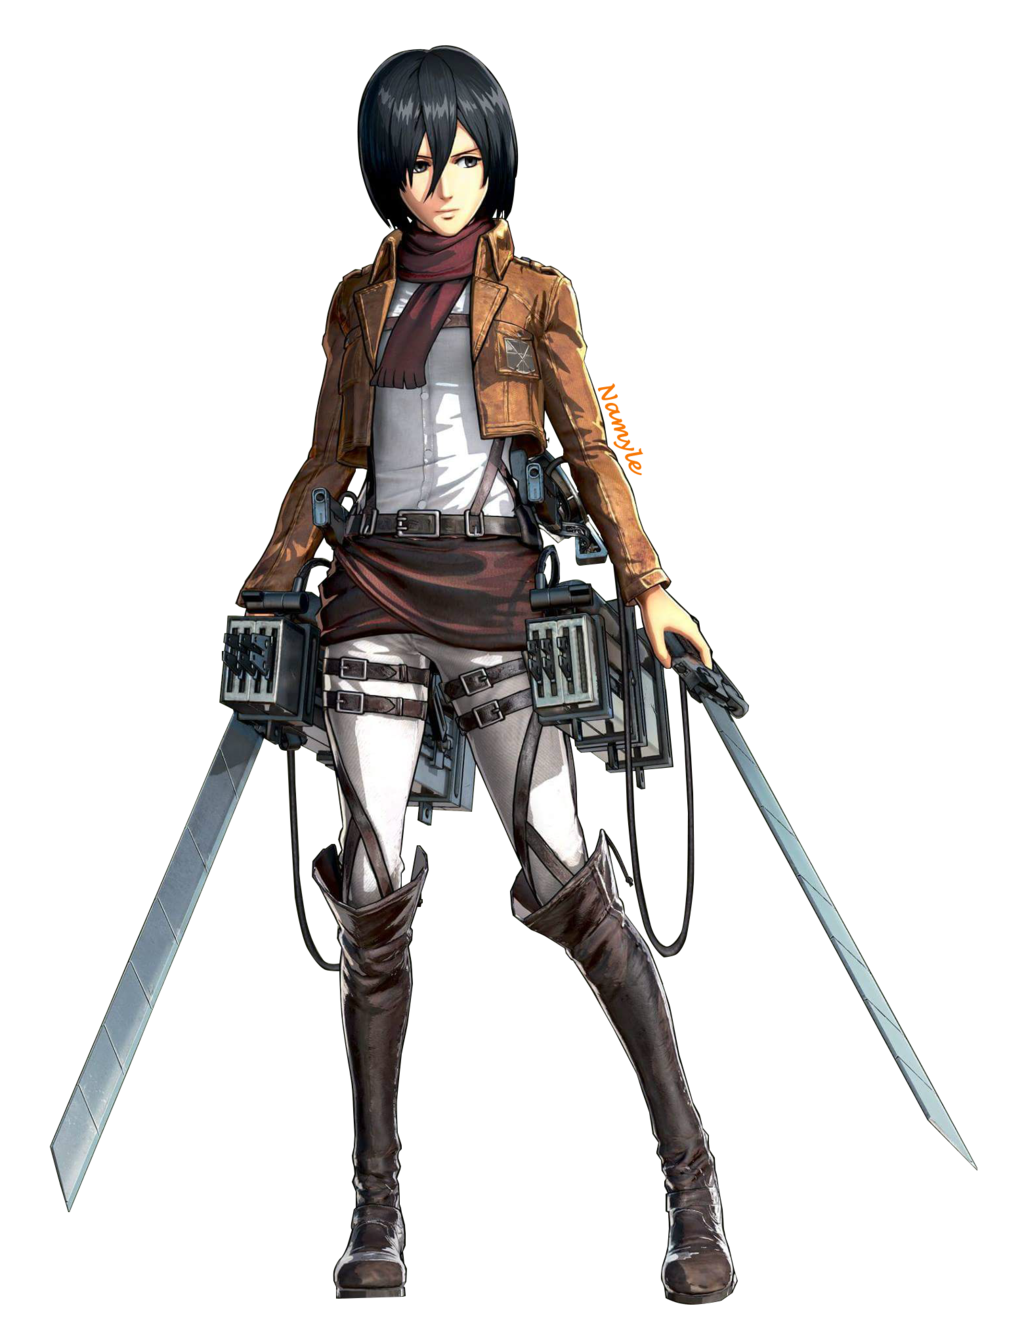 Mikasa Ackerman (Render) by Namyle Attack on titan anime